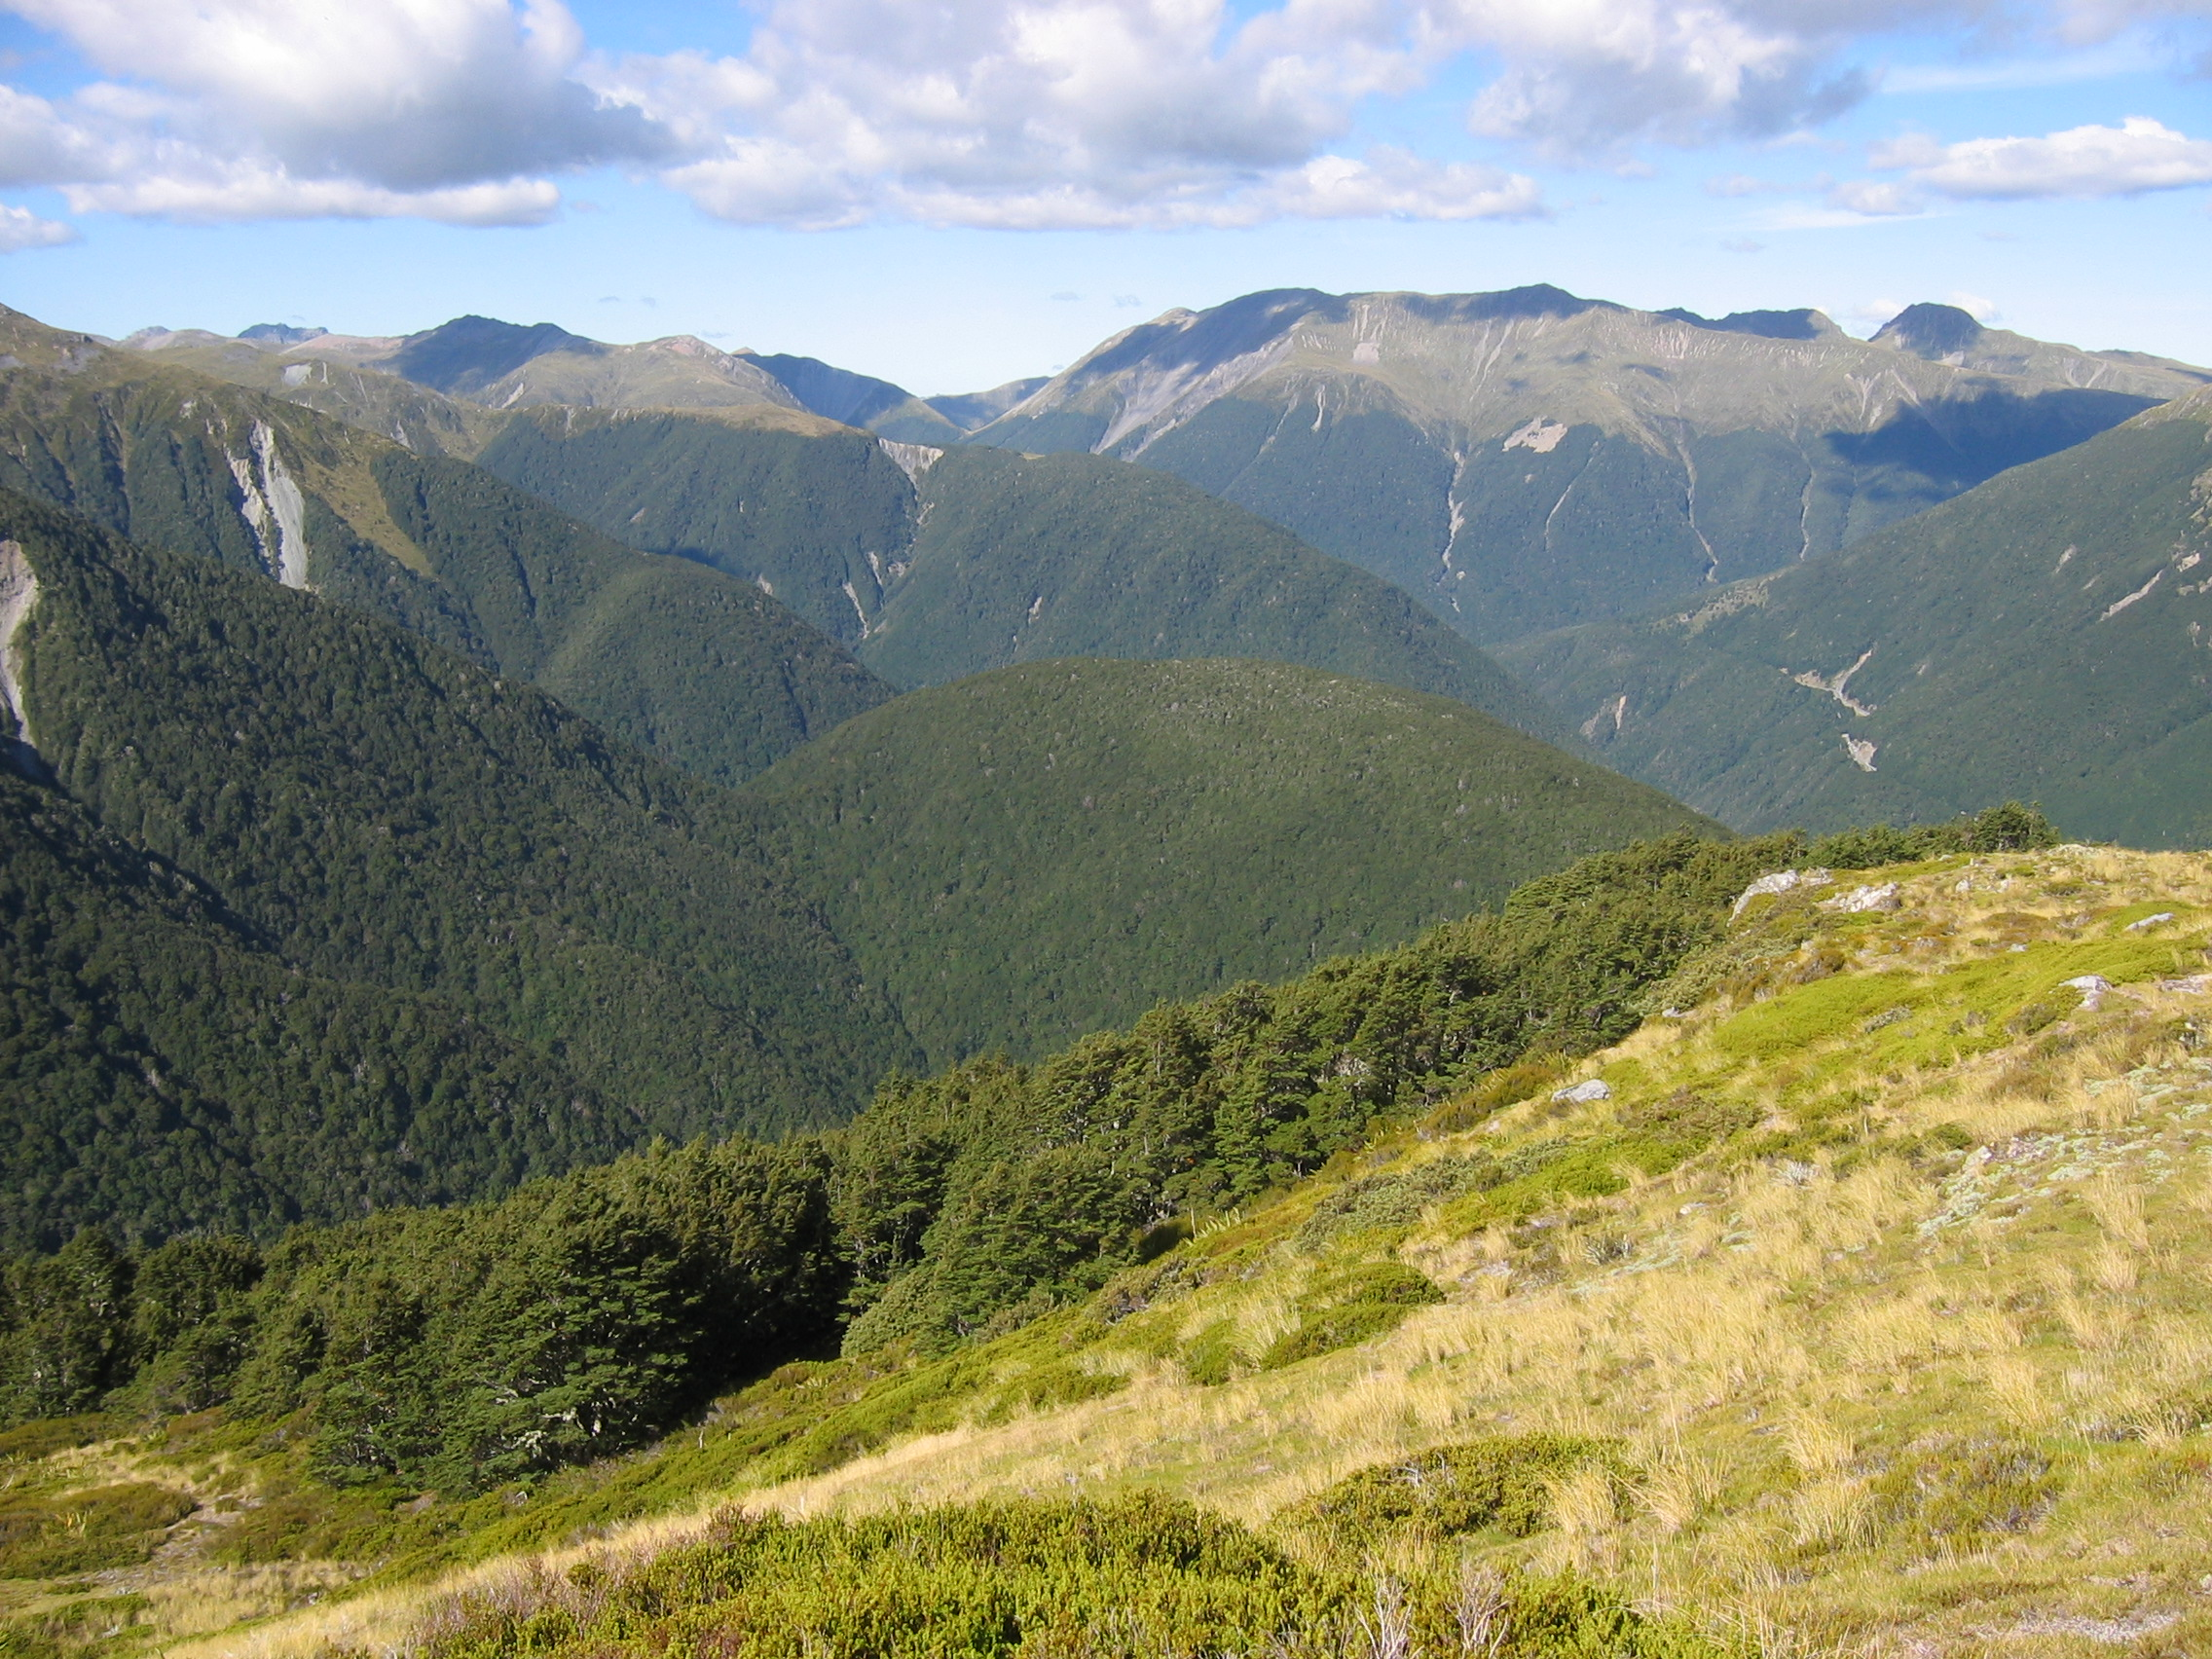 Abrupt discrete southern-beech treeline in New Zealand